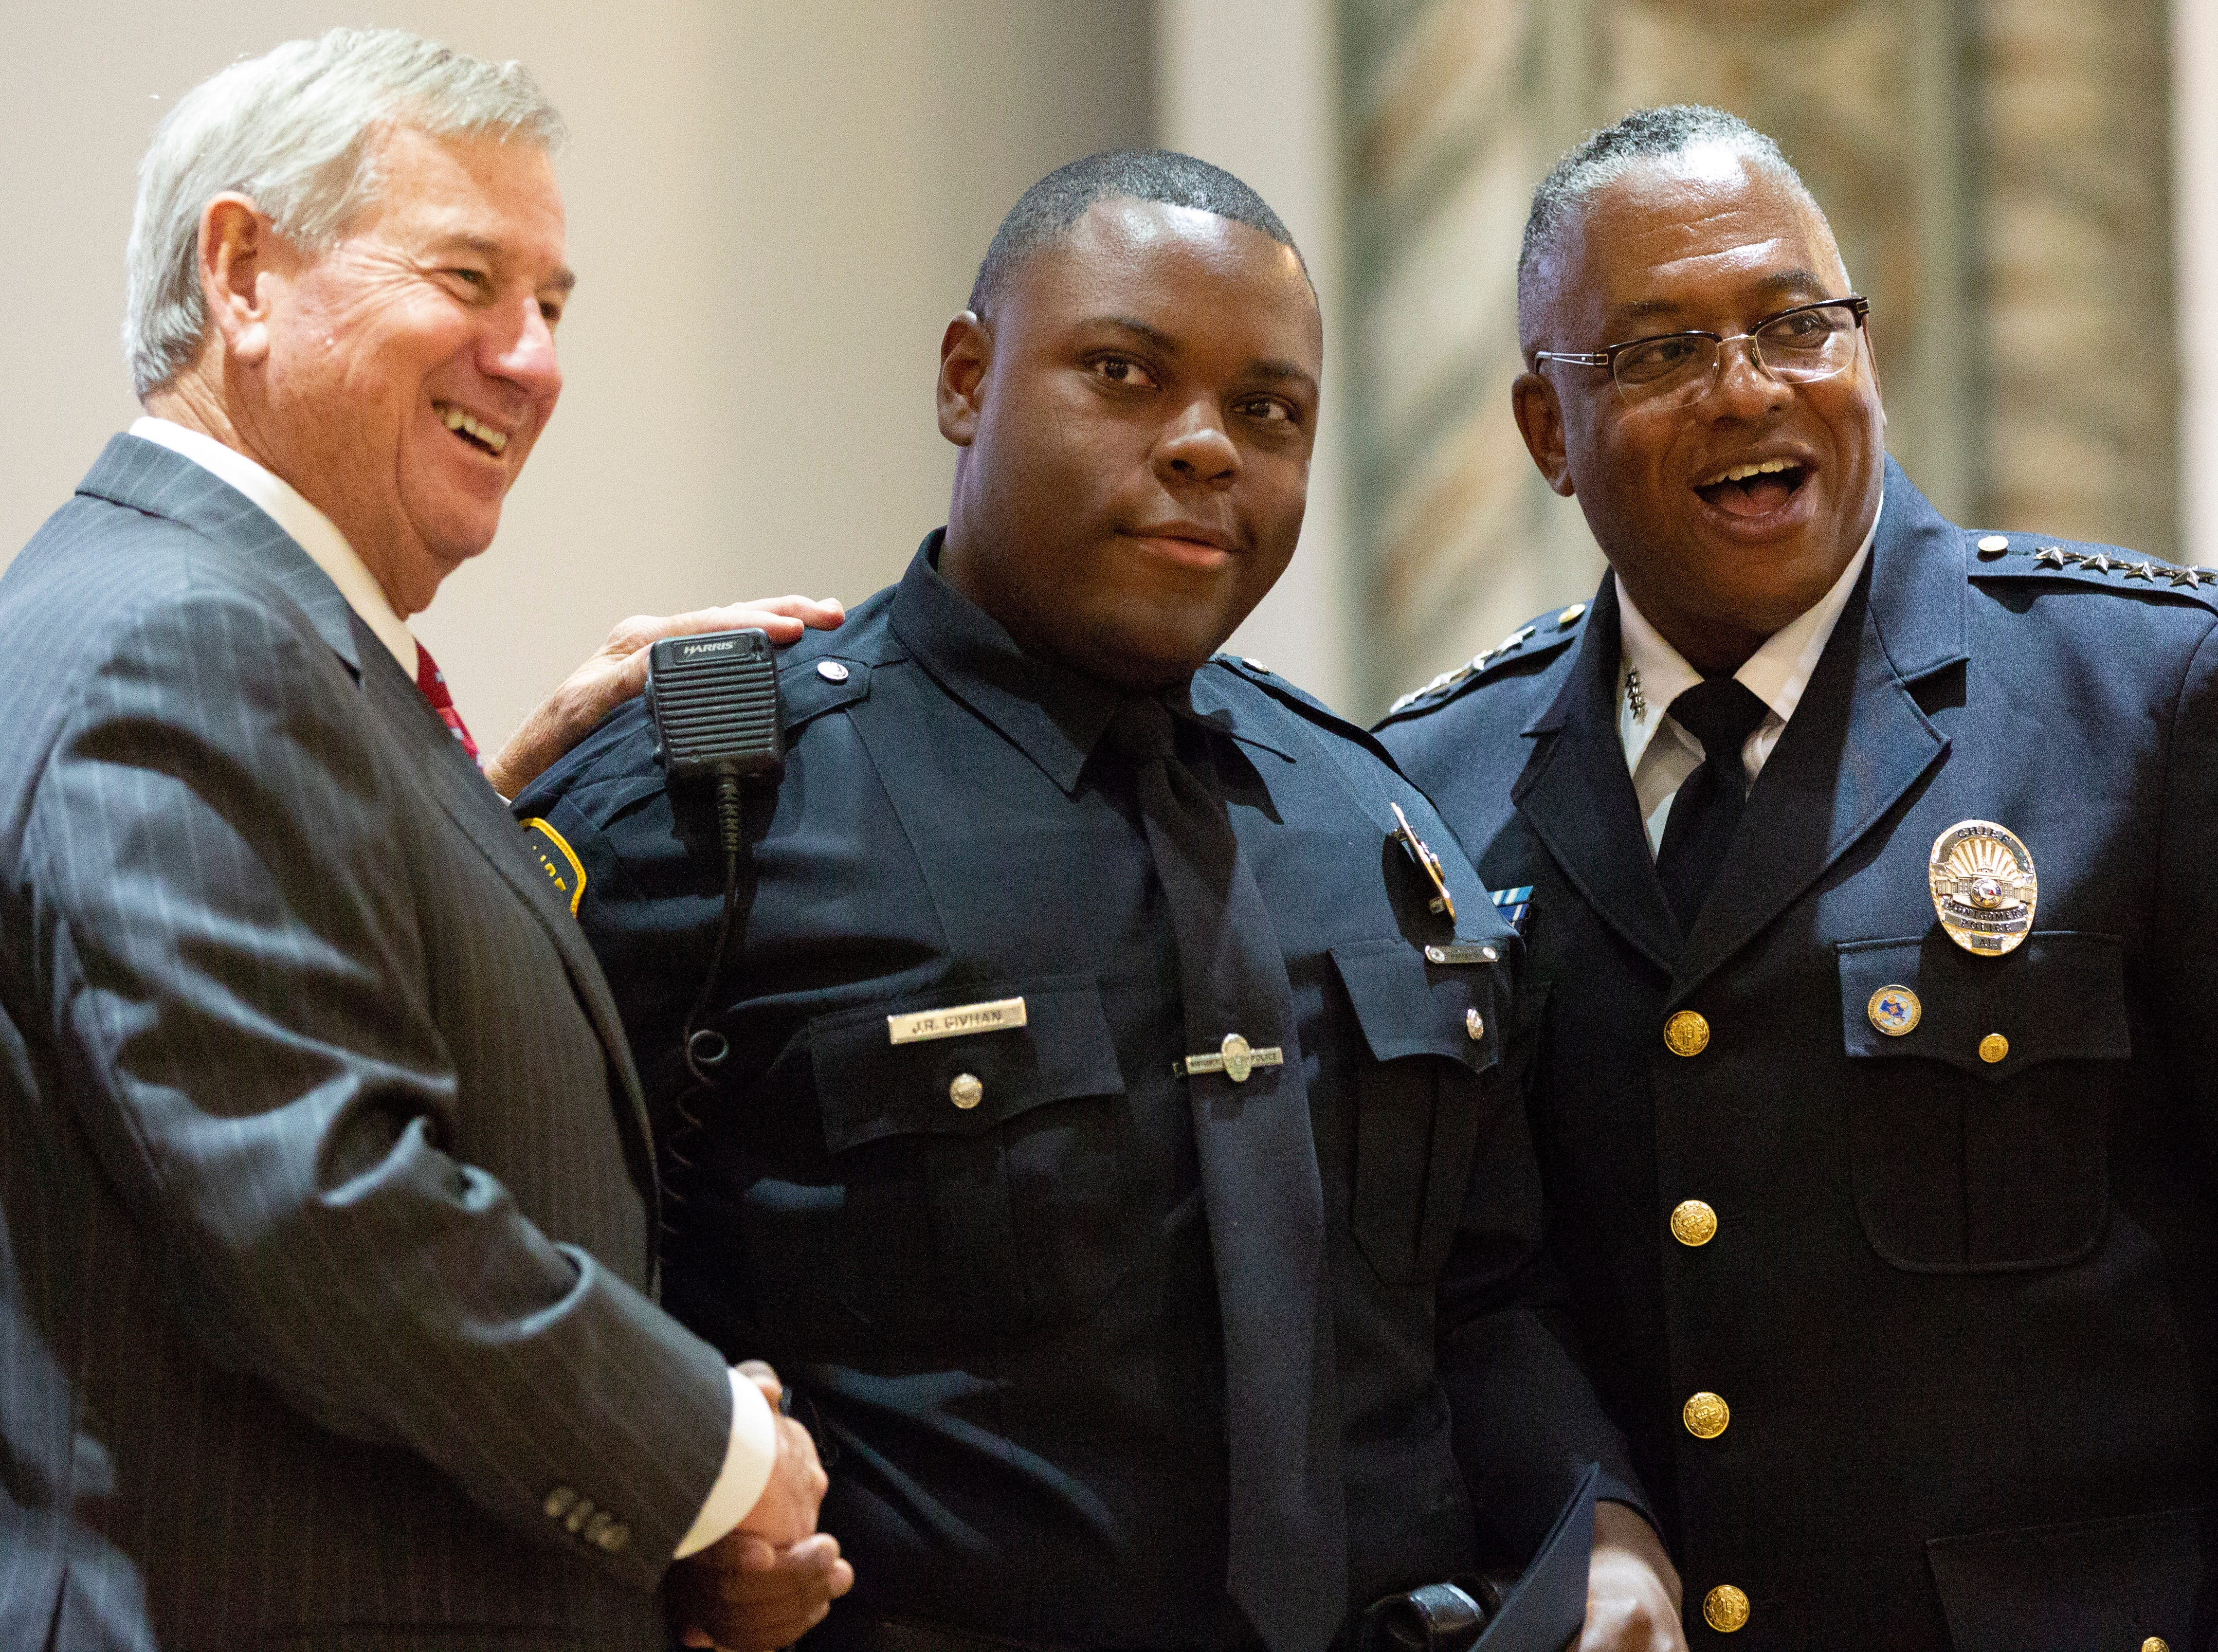 Montgomery police officer Jeremy Givhan poses for a photo after graduating from the academy.